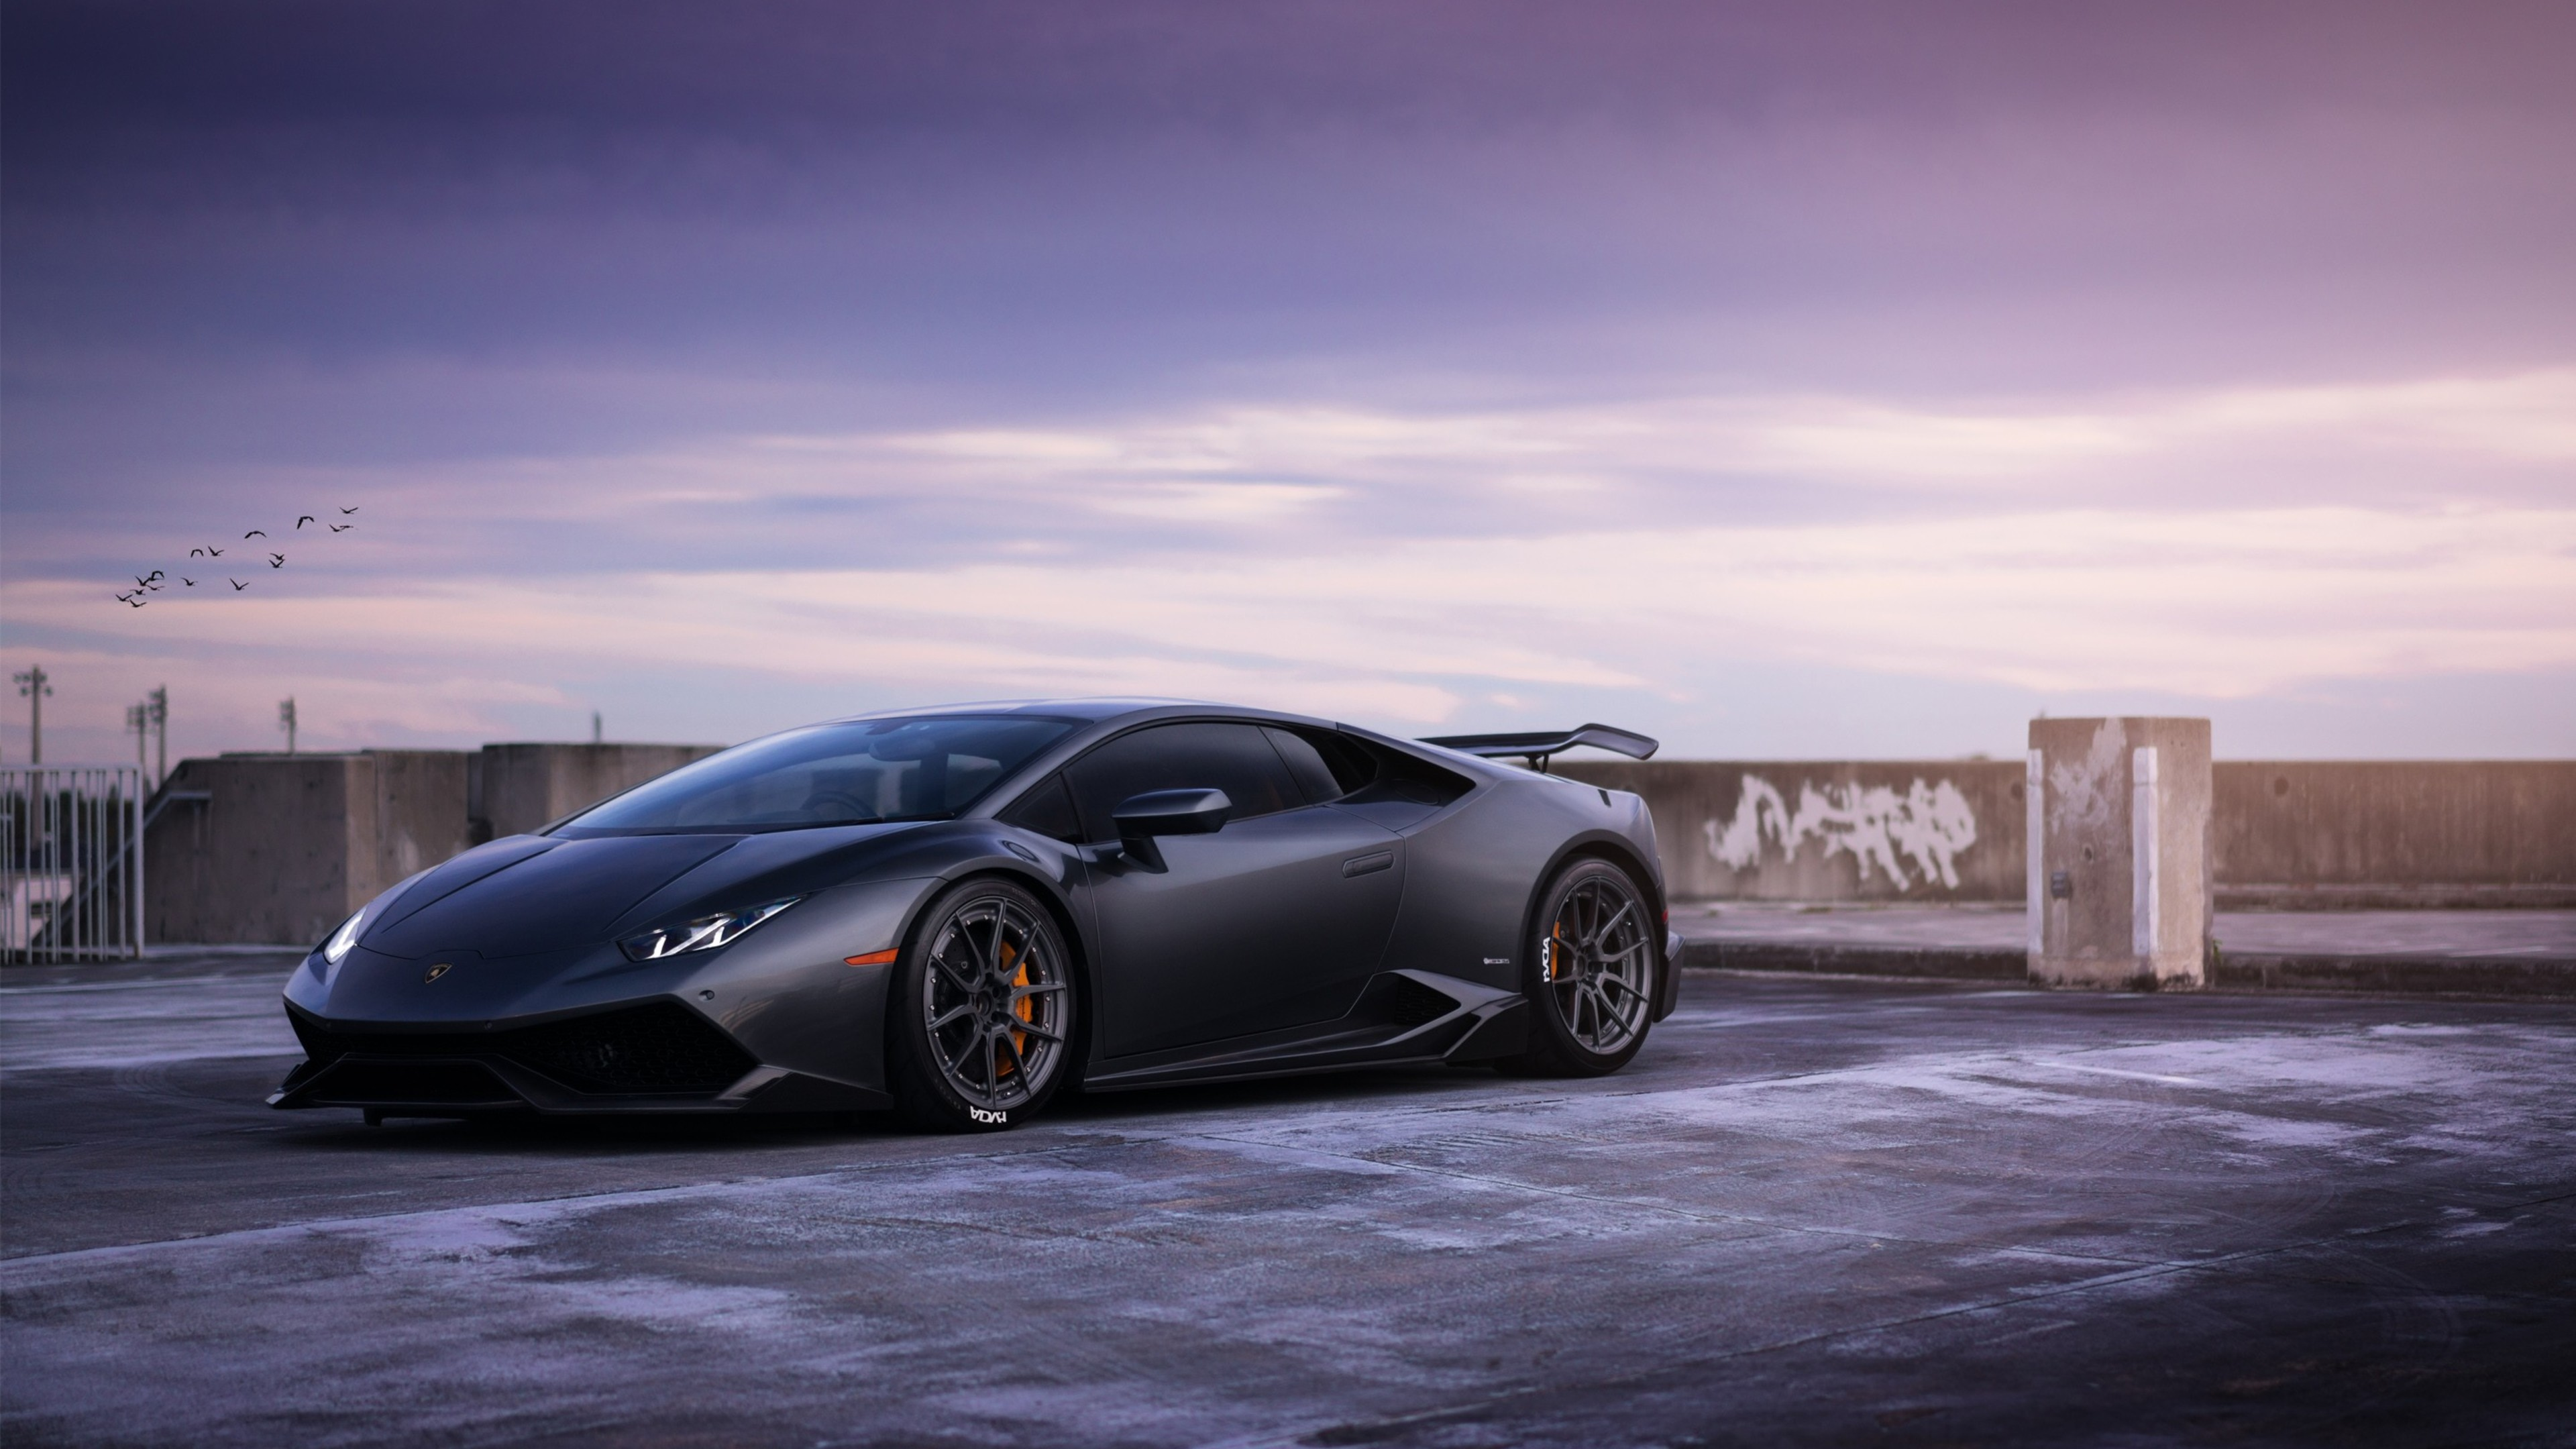 1920x1080 Adv Wheels Lamborghini Huracan Laptop Full Hd 1080p Hd 4k